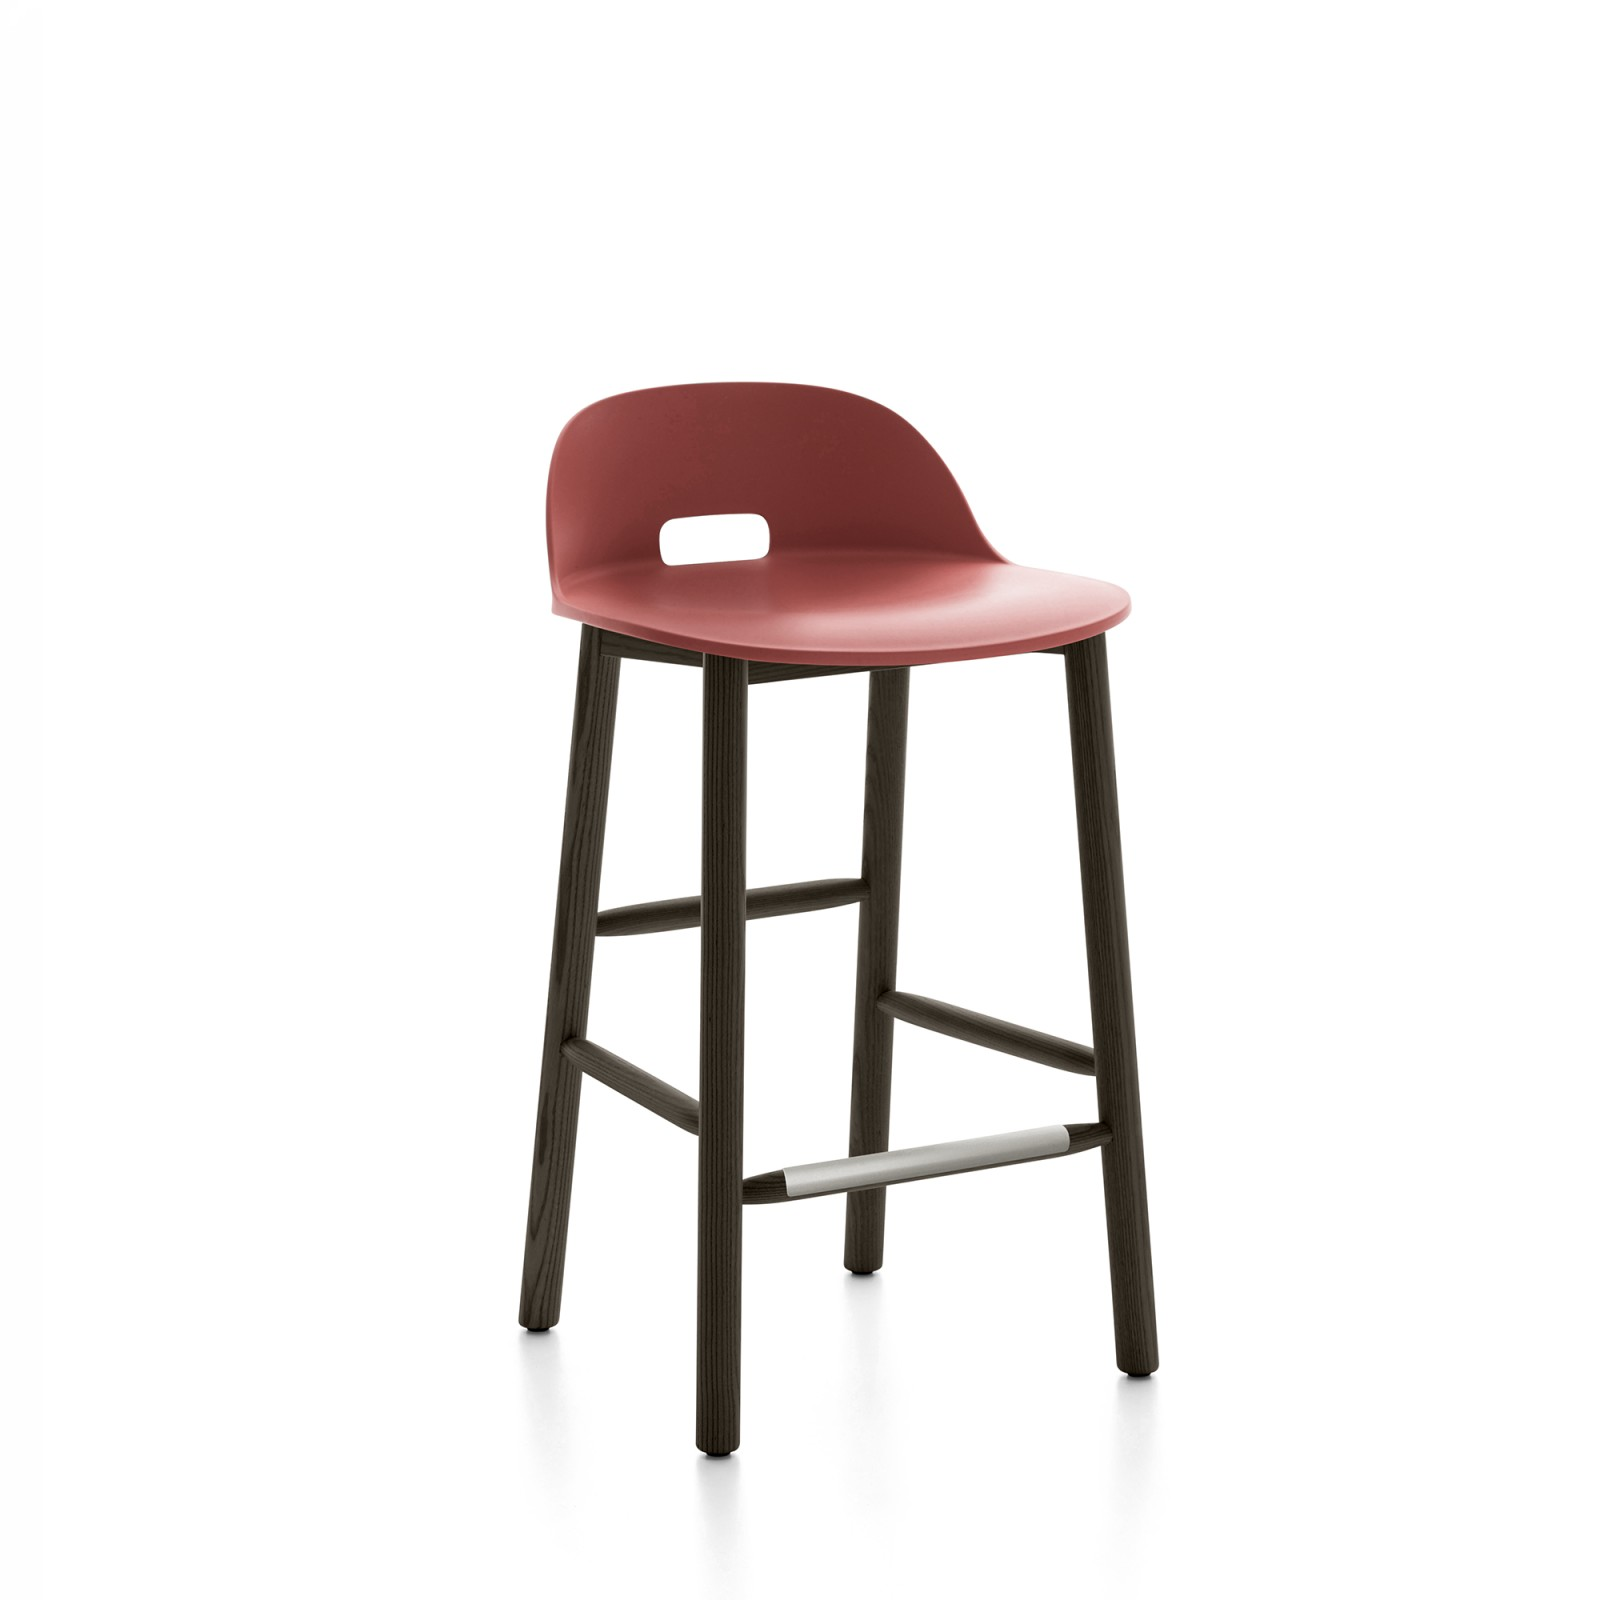 Alfi Counter Stool, Low Back Red, Dark Stained Ash Frame